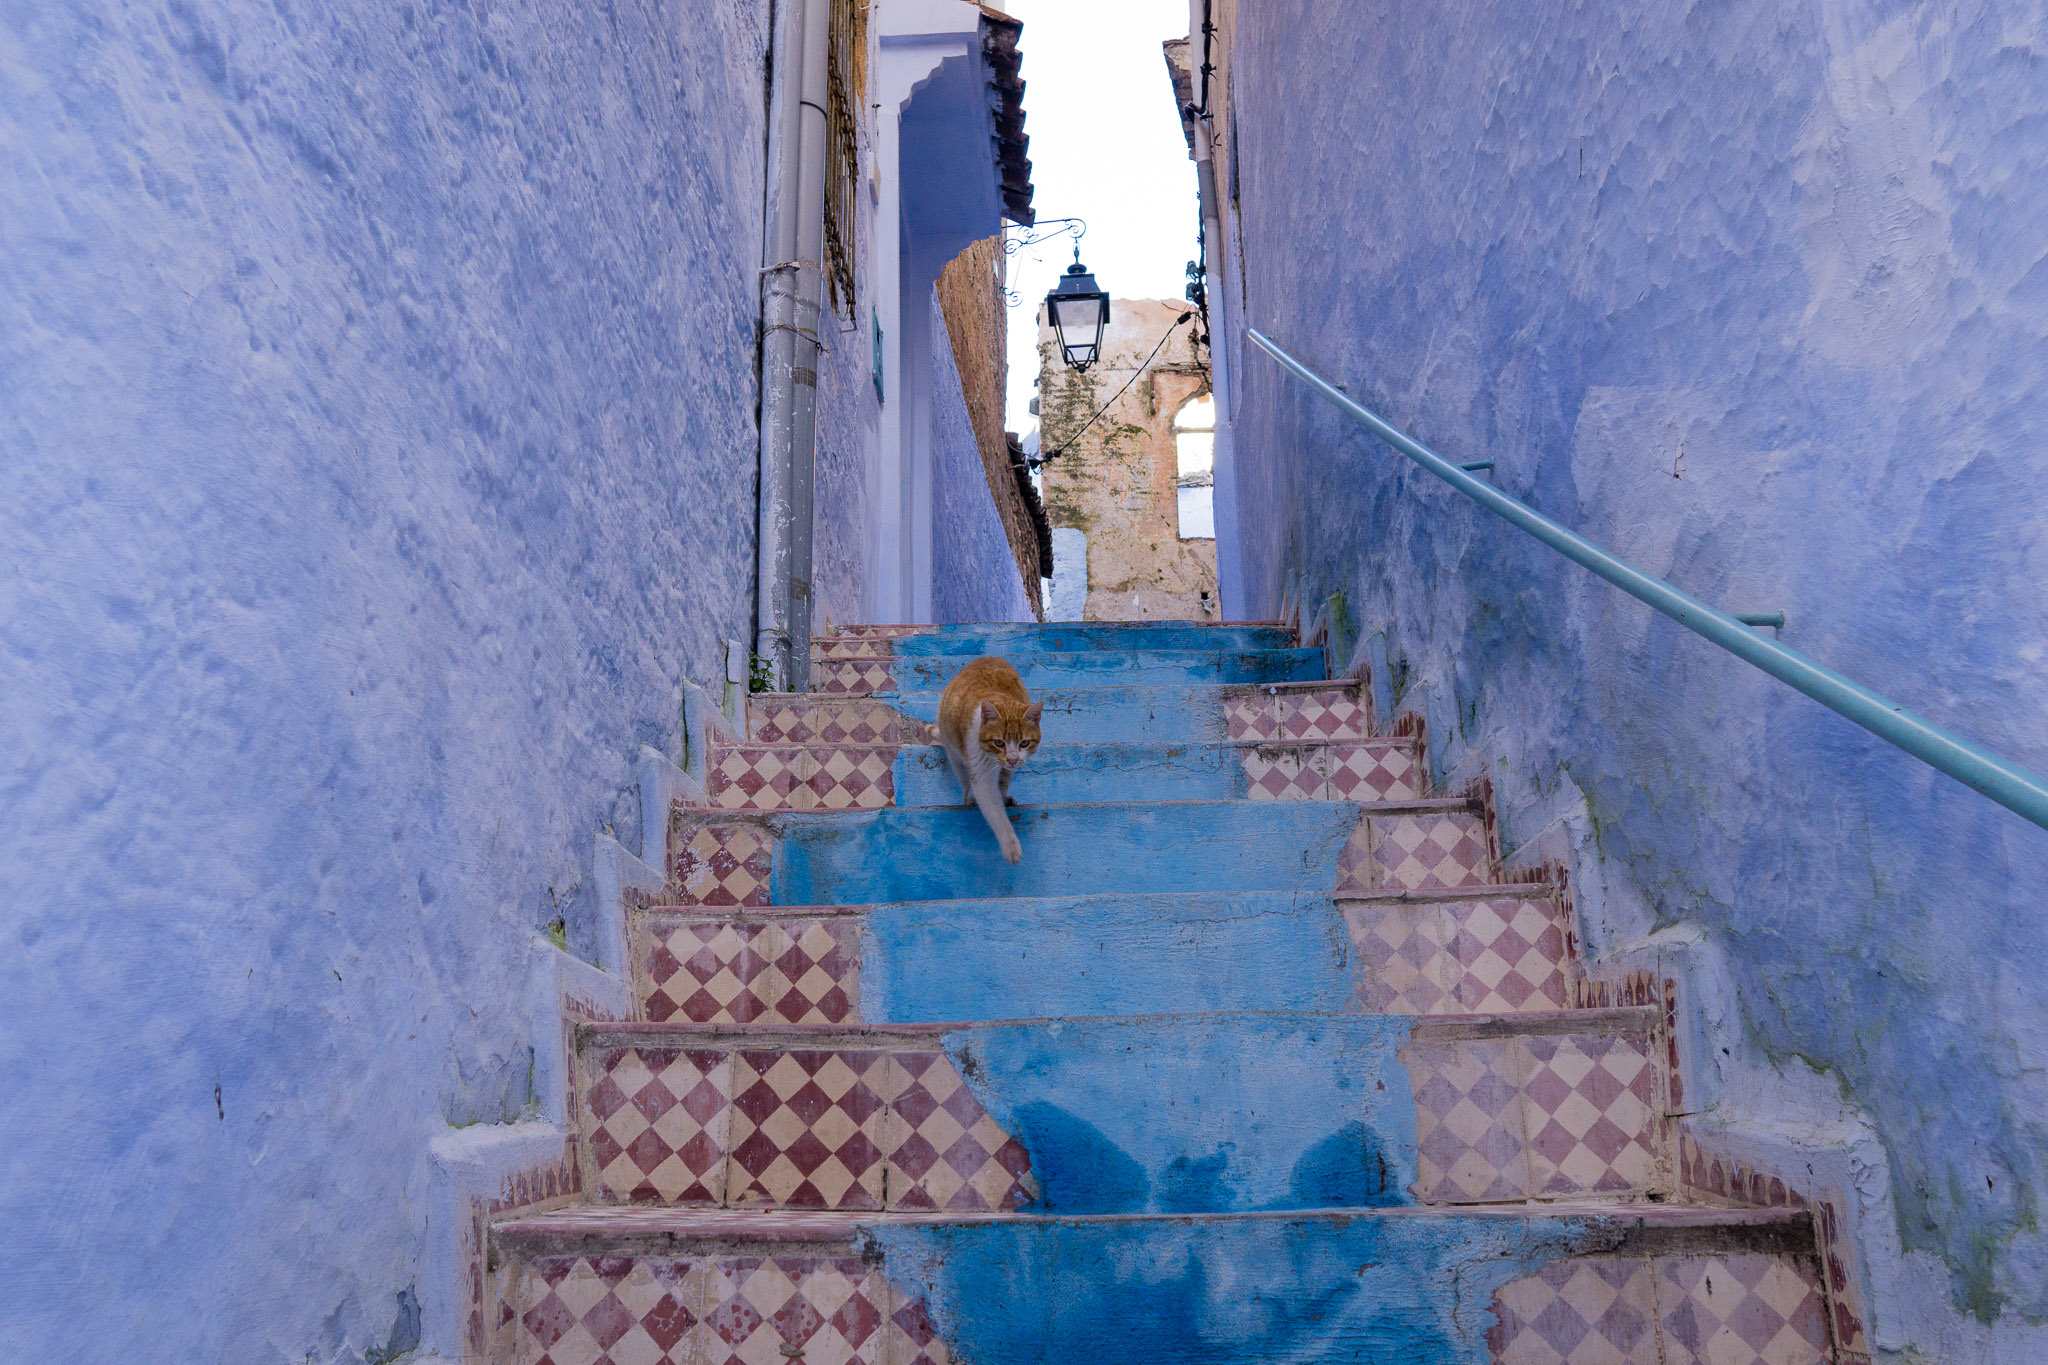 So many cats hanging out in Chefchaouen!